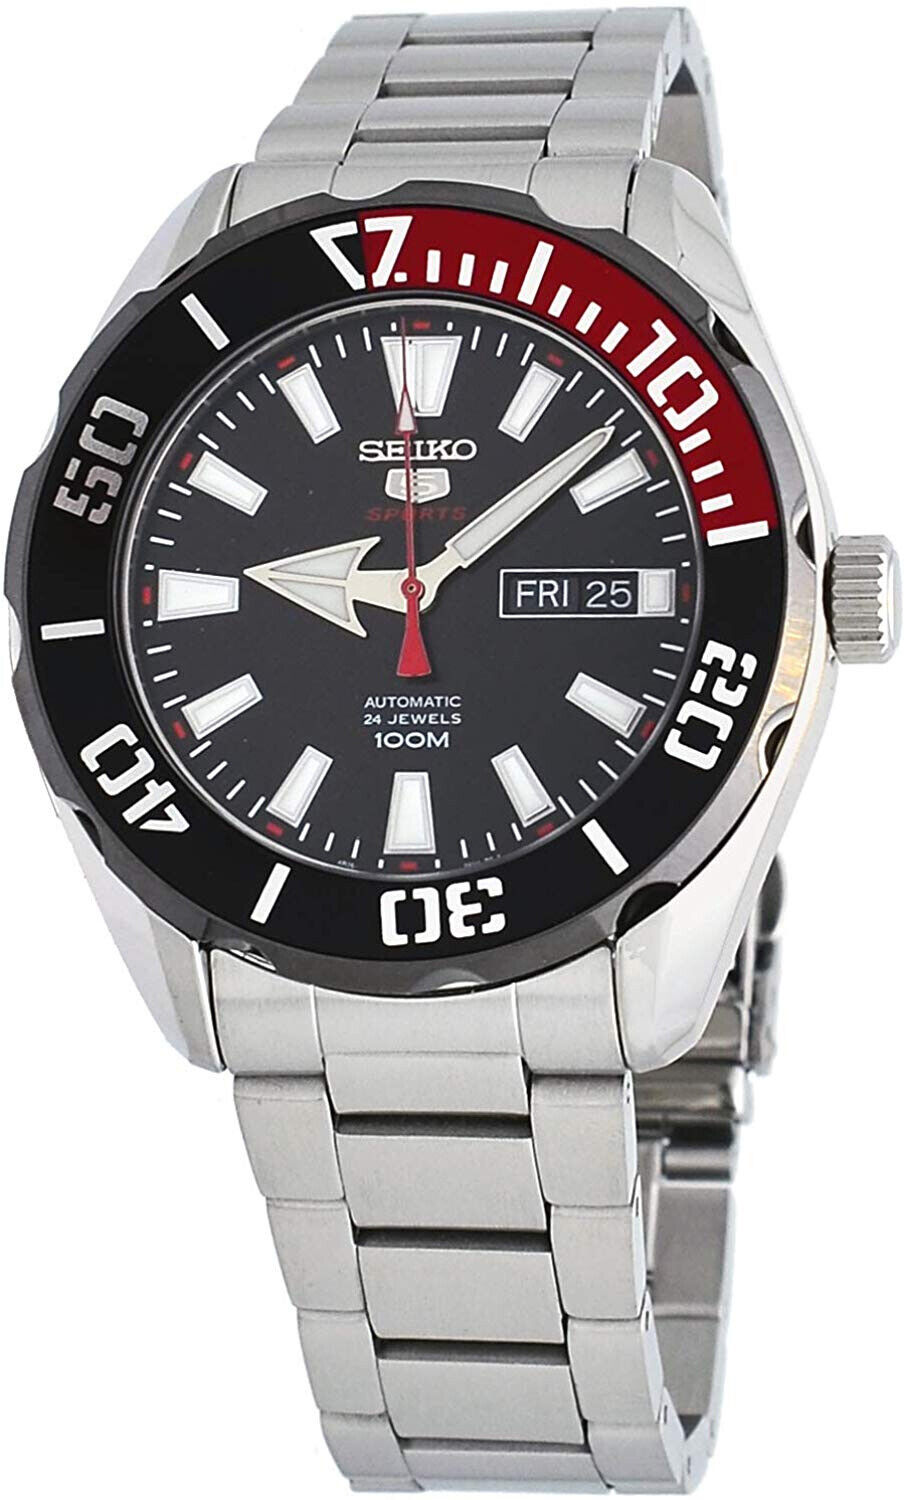 Seiko 5 Sports SRPC57 Men's Black Red Bezel Black Dial 100M